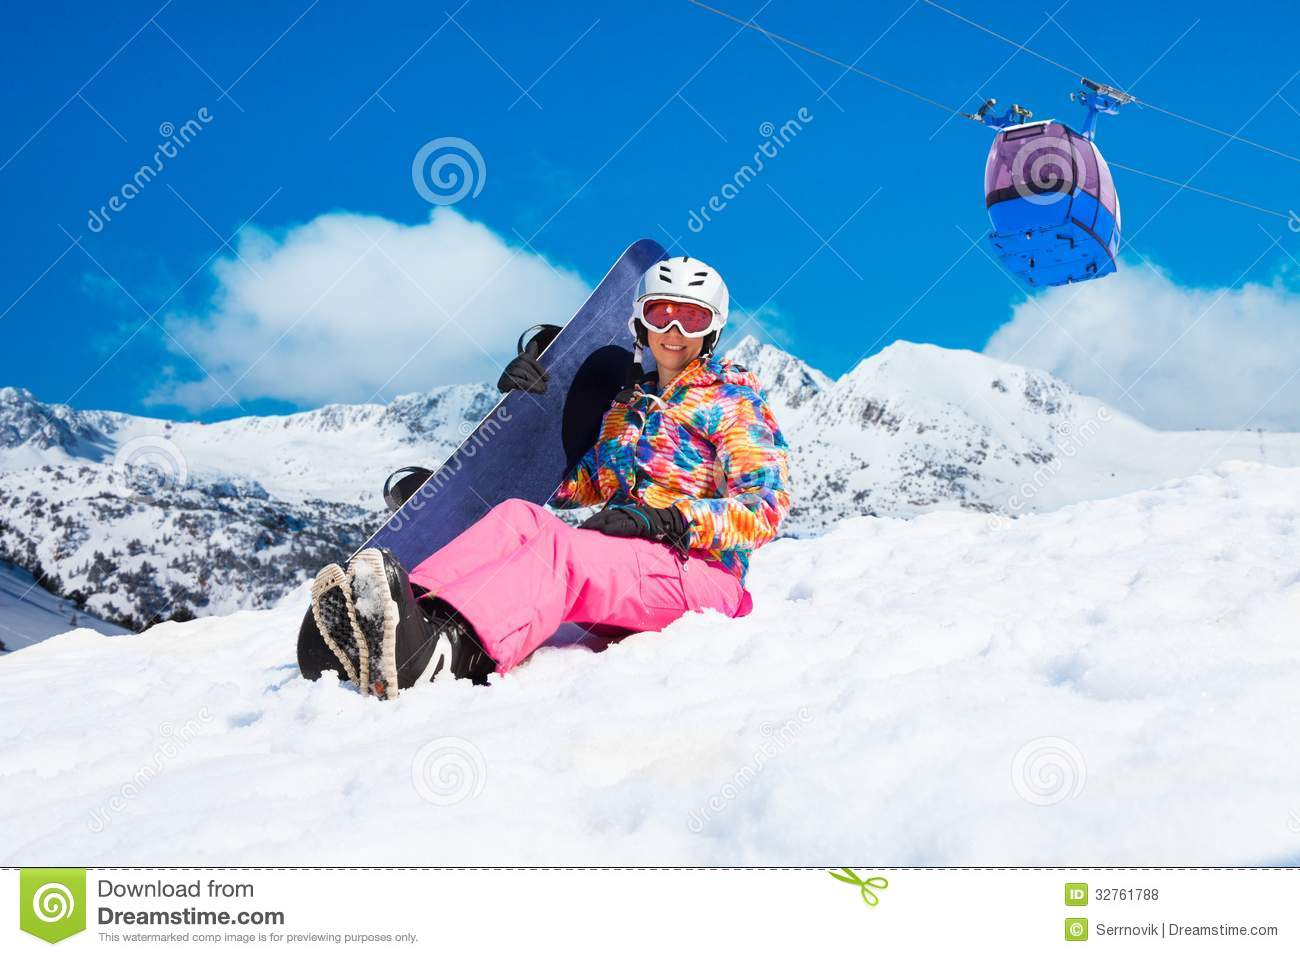 4f7eacfee655 Happy woman in pink sit in snow with snowboard with cable car and mountains  on blue sky background